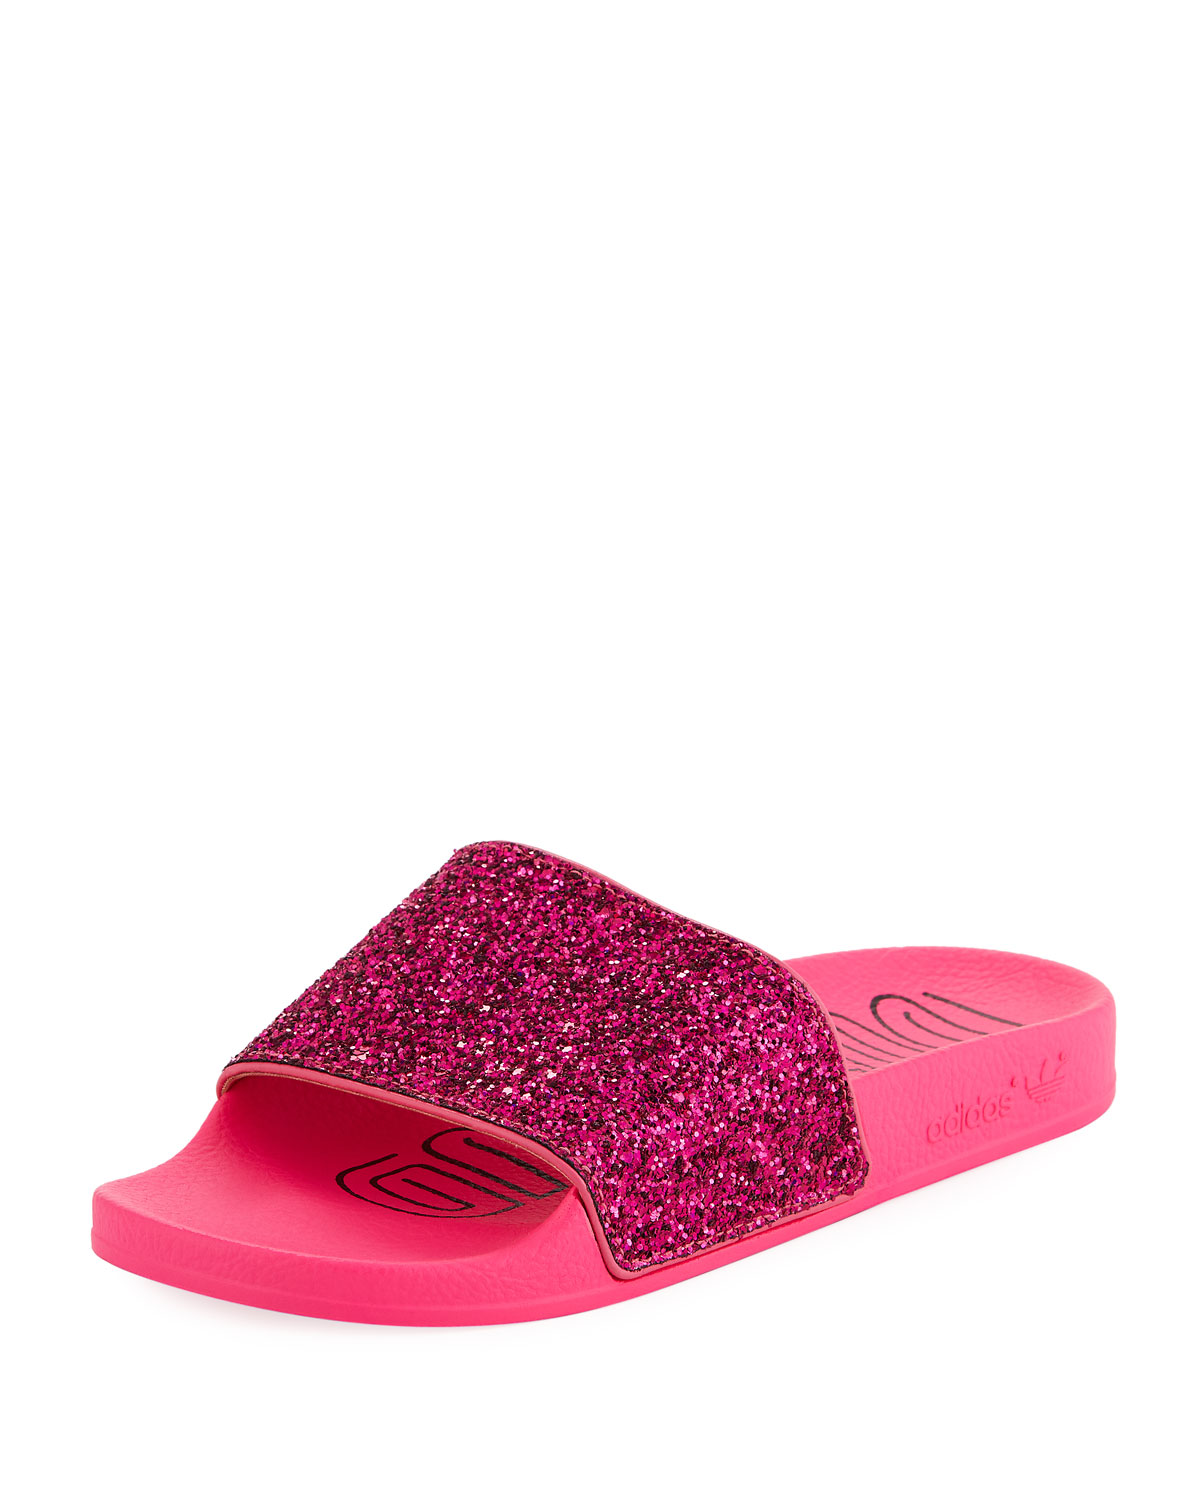 ab23c5dc7b0 Adidas Originals Adilette Glitter Vinyl Pool Slide Sandals In Shock Pink  Black